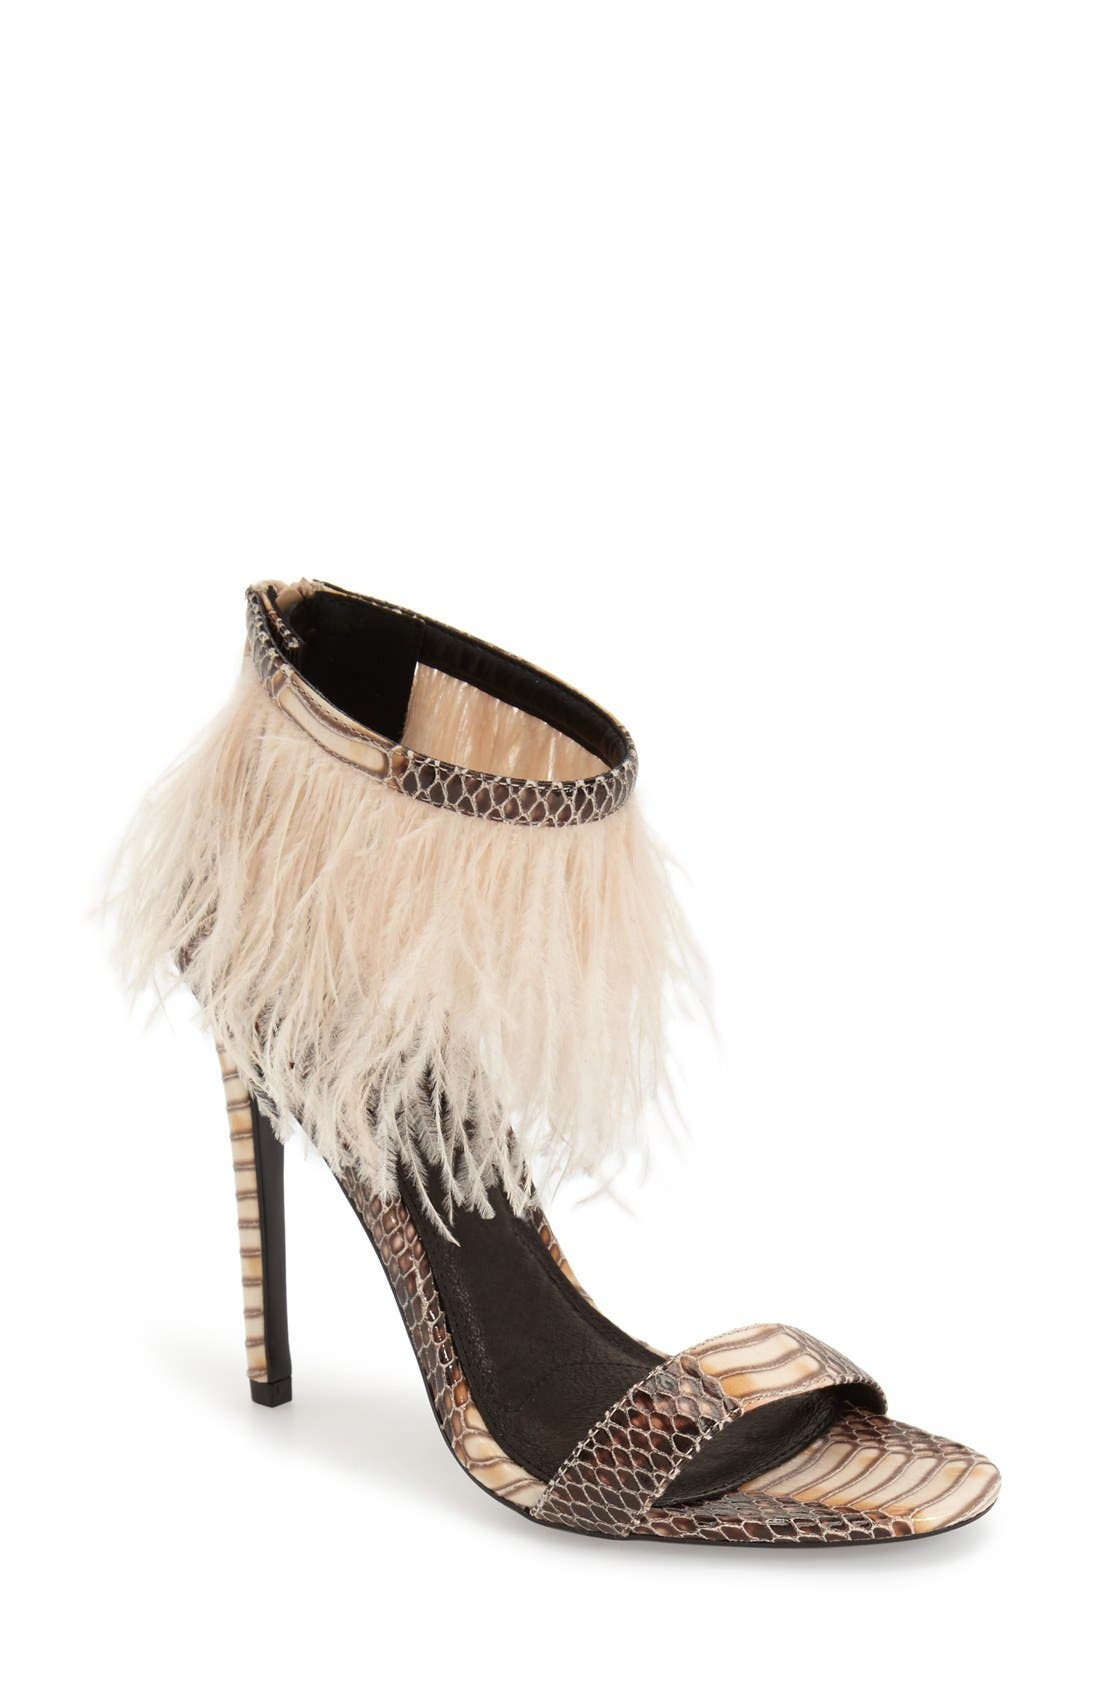 Alternate Image 1 Selected - Topshop 'Ravenous' Feather Sandal (Women)